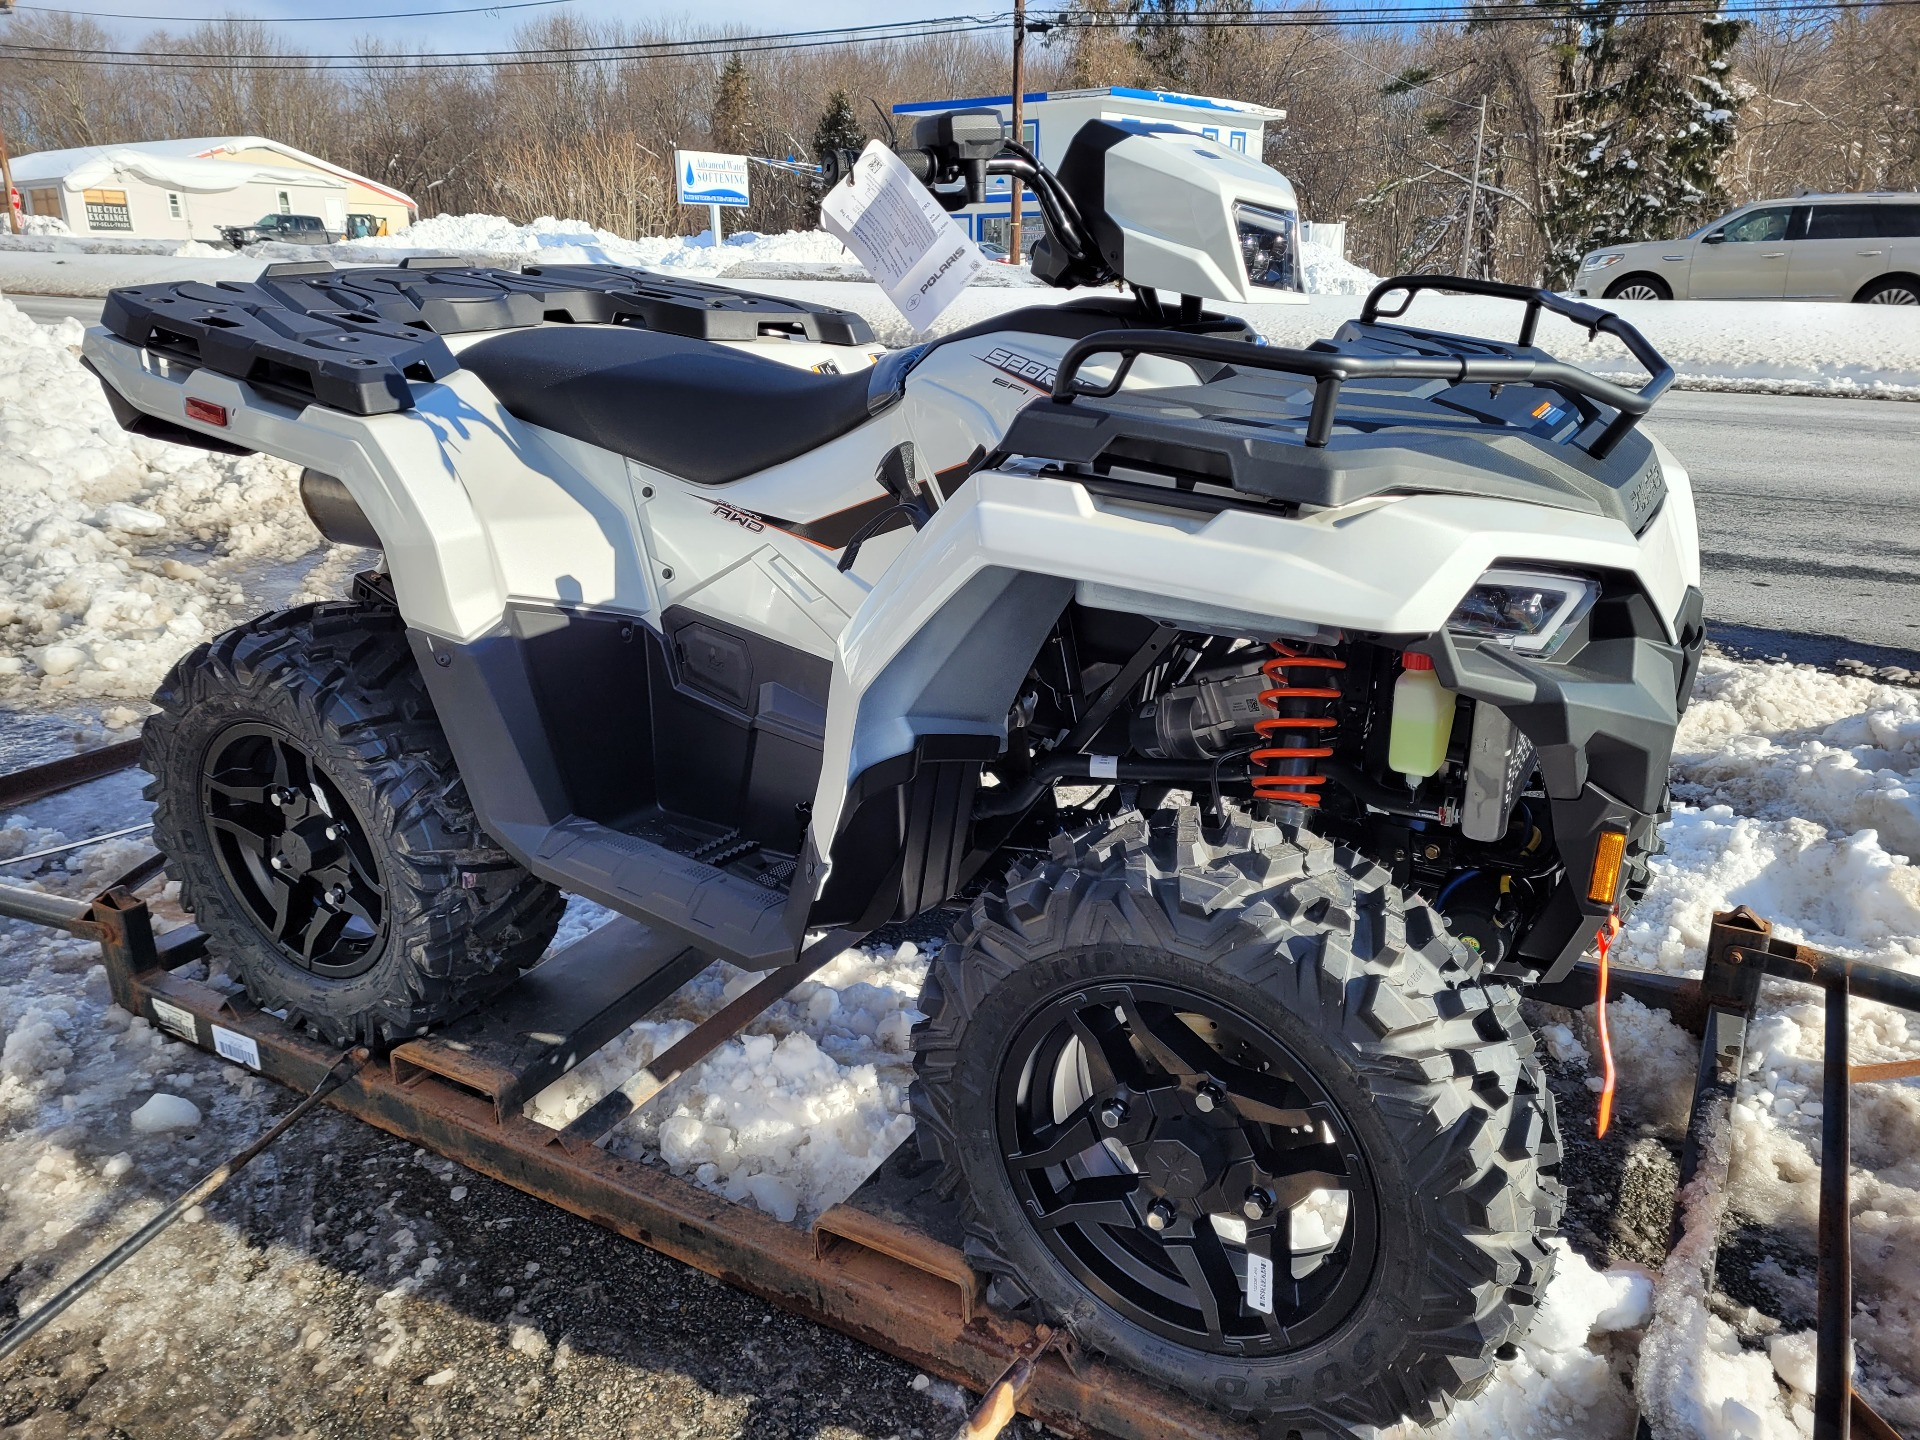 2021 Polaris Sportsman 570 Ultimate Trail Limited Edition in Ledgewood, New Jersey - Photo 2